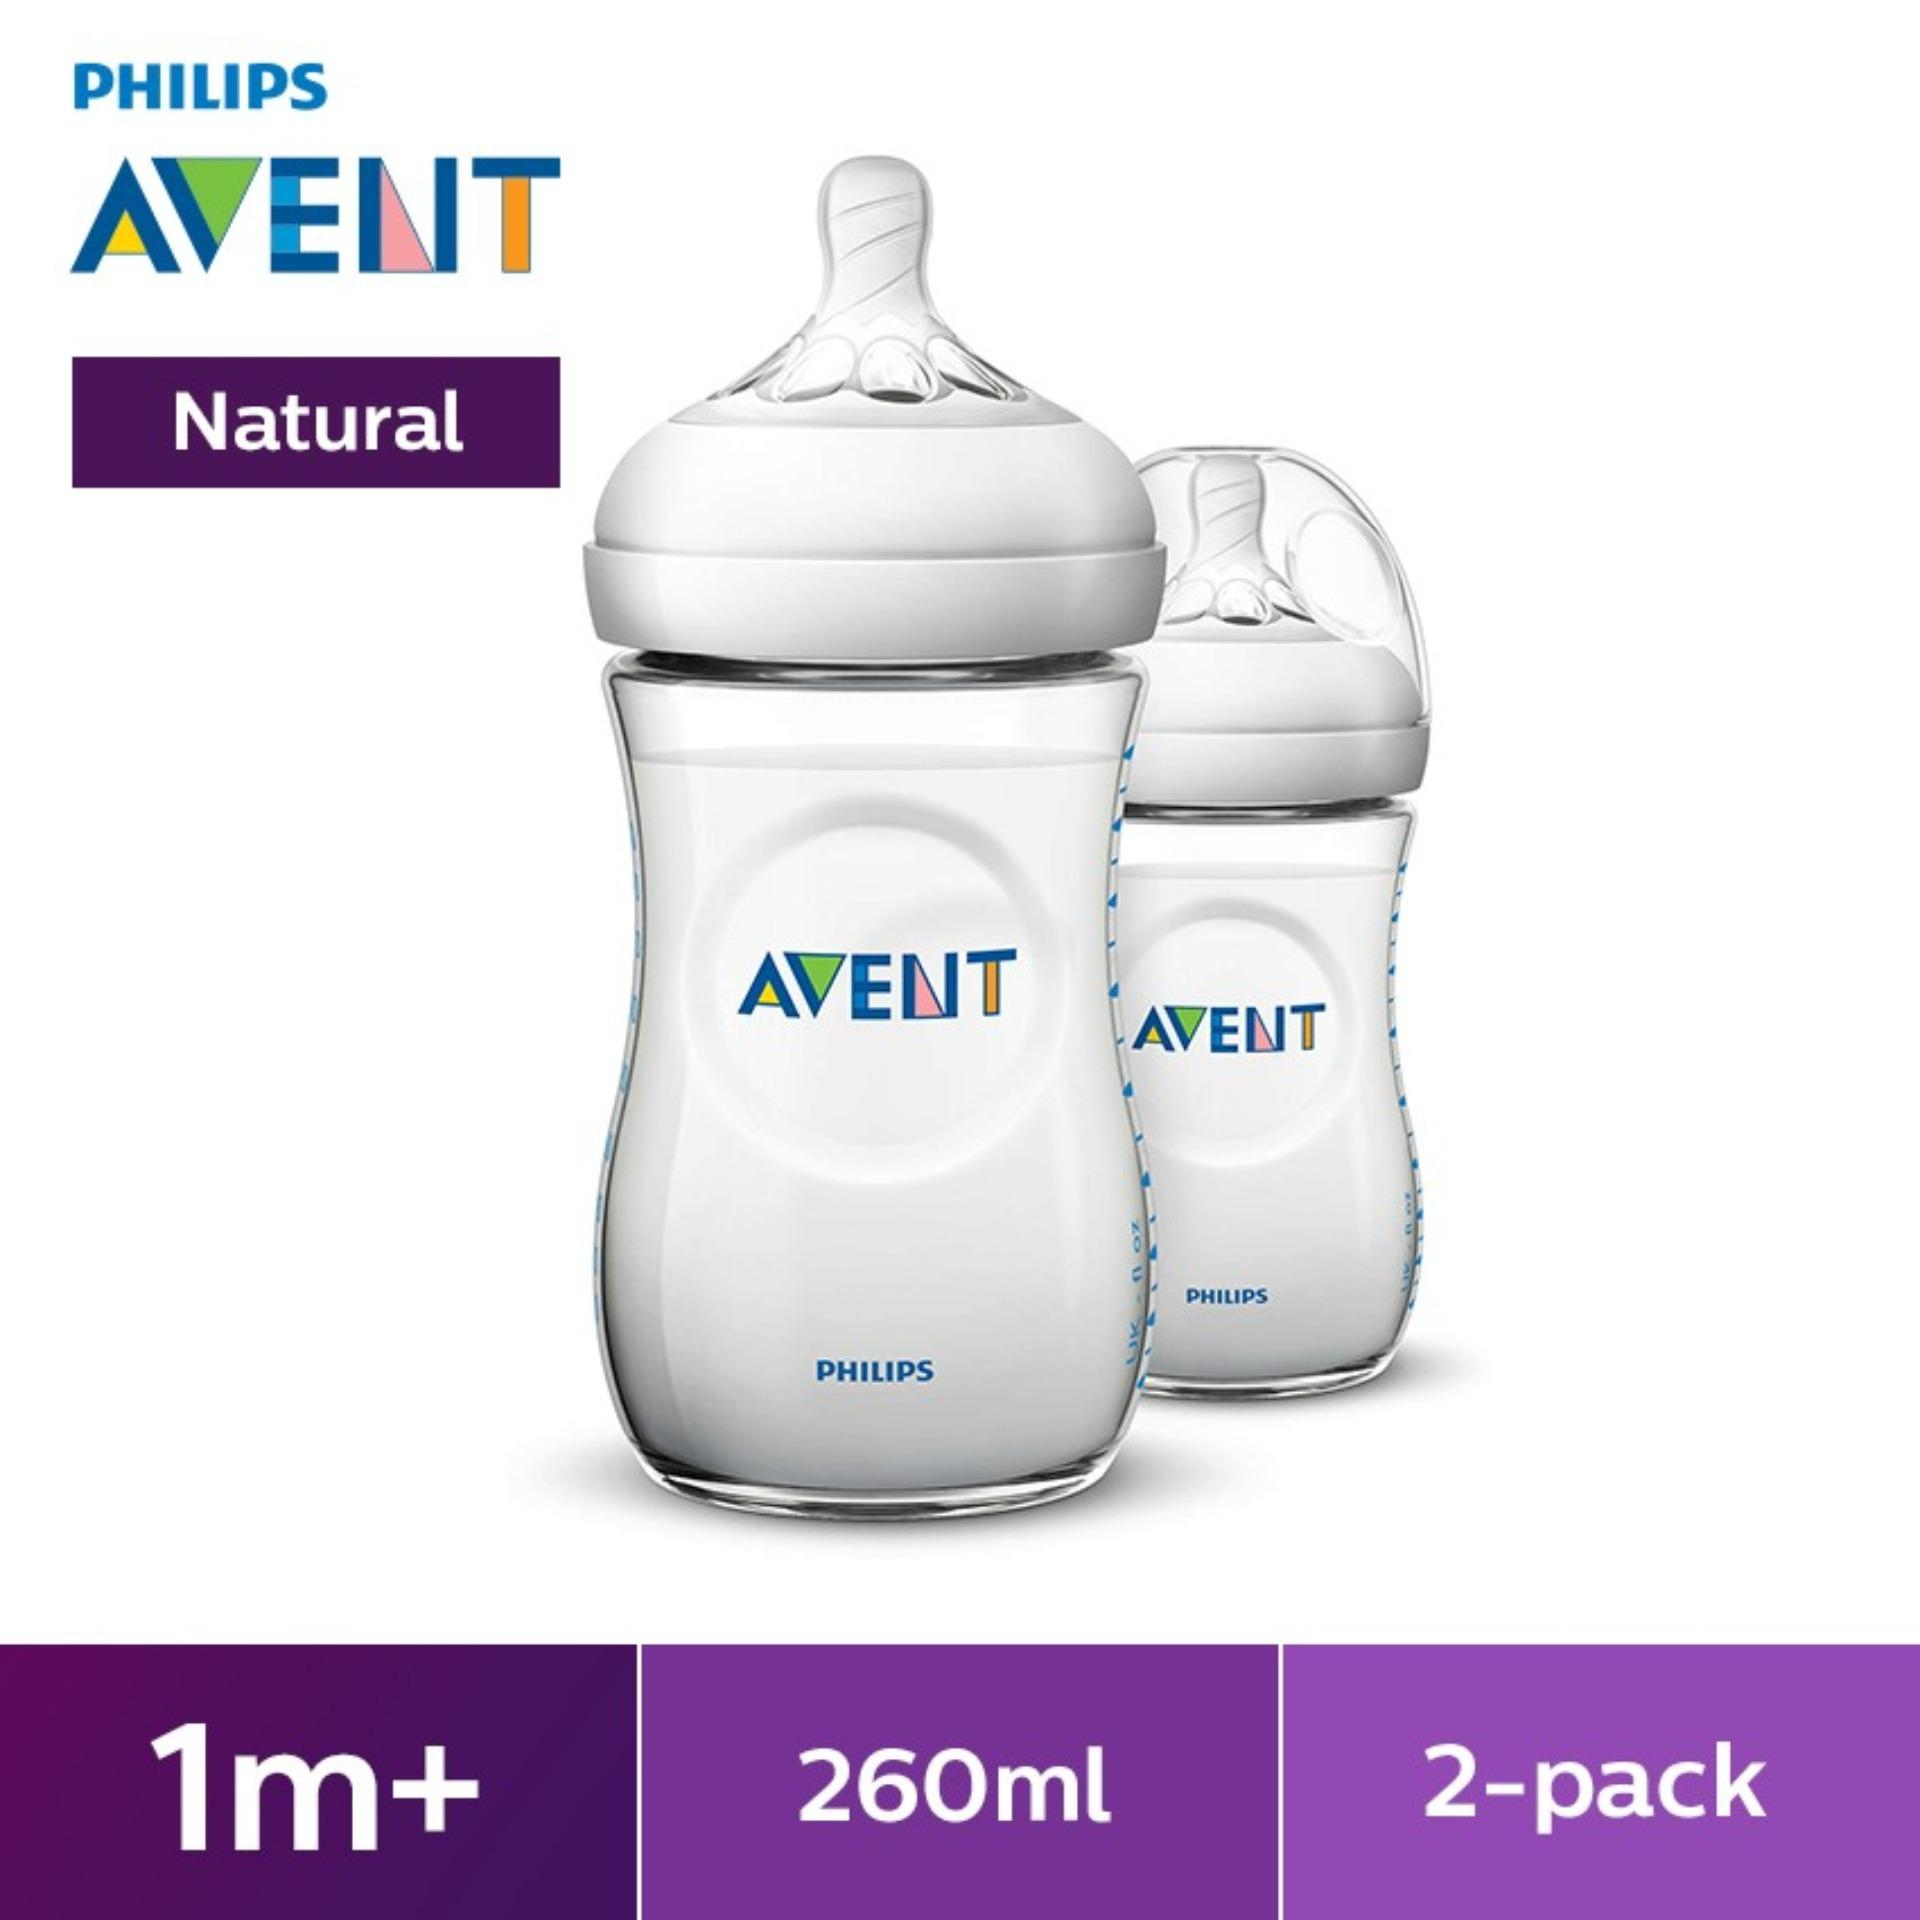 PHILIPS AVENT NATURAL 9OZ BOTTLE TWIN PACK